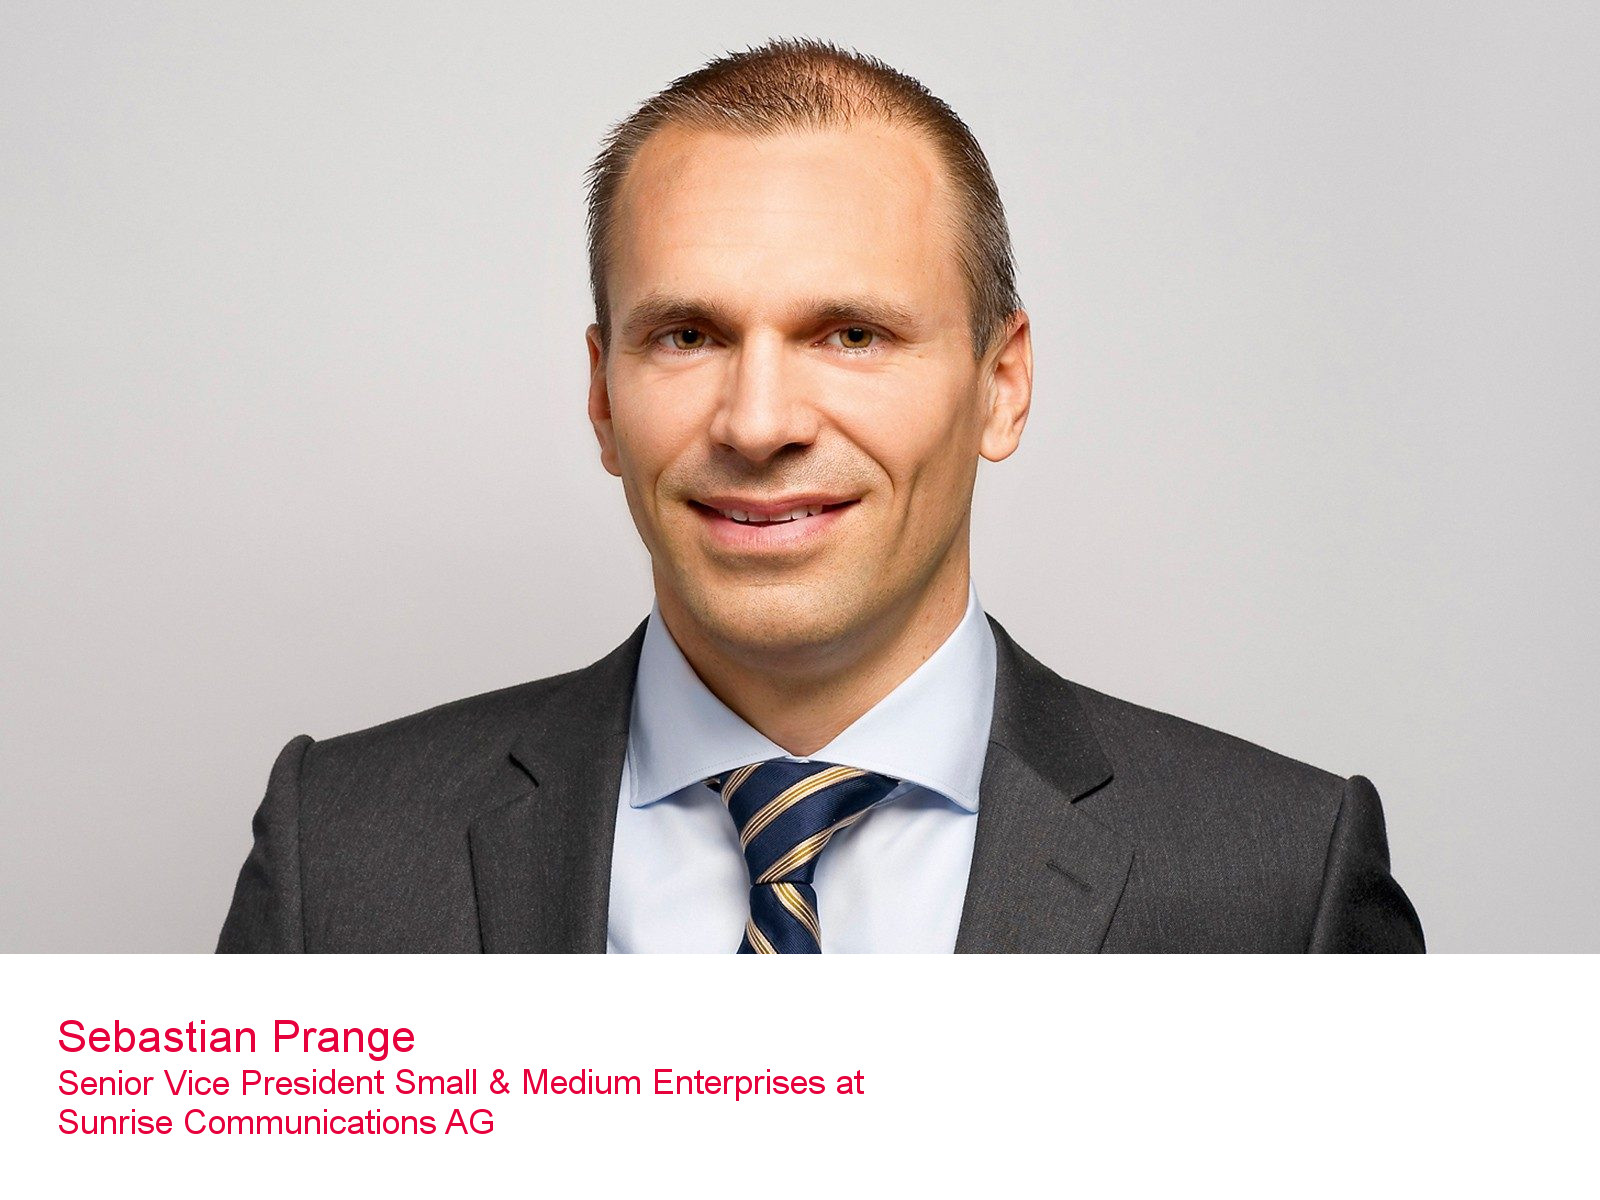 Sebastian Prange, Senior Vice President Small & Medium Enterprises bei Sunrise Communications AG